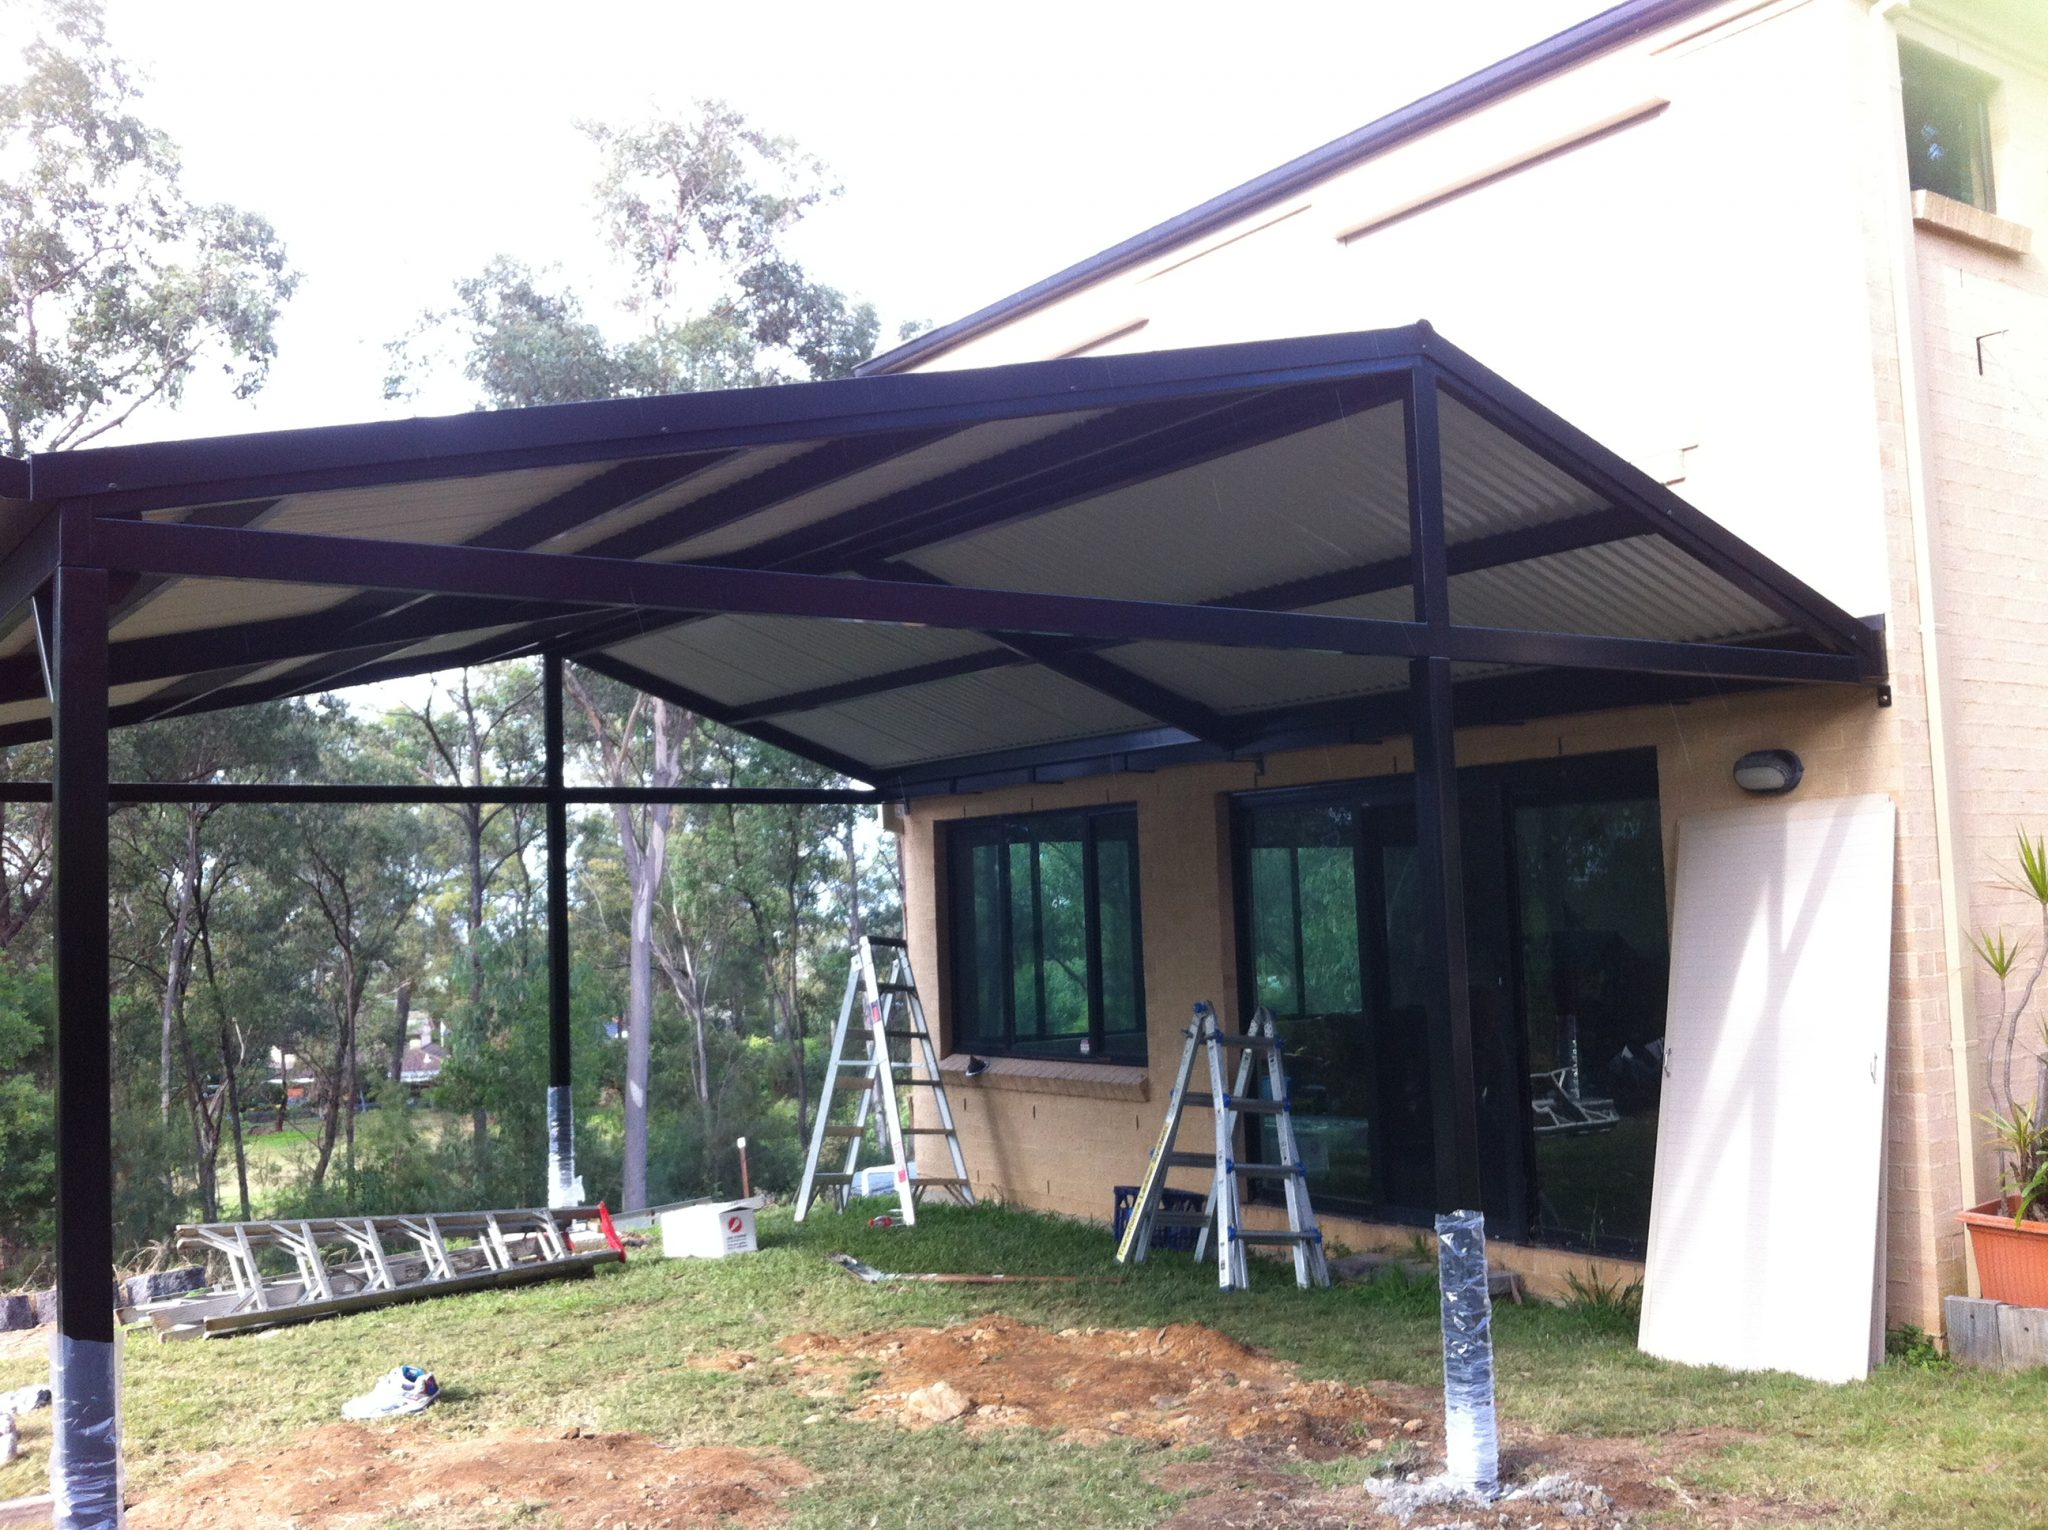 Colourbond Awning installation in Penrith